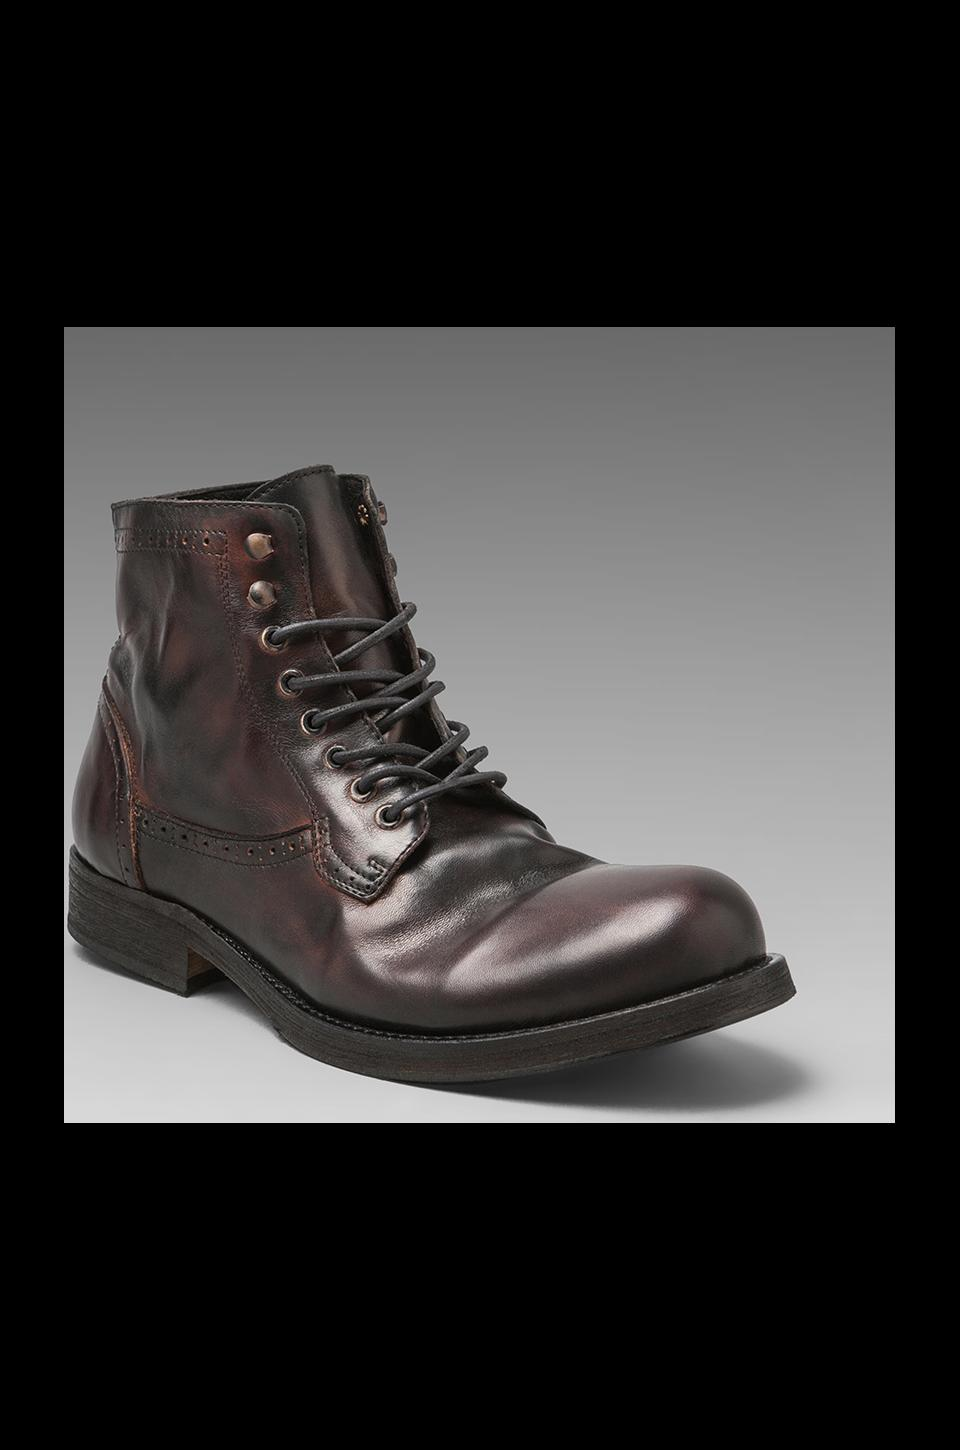 H by Hudson Rycroft Boot in Black